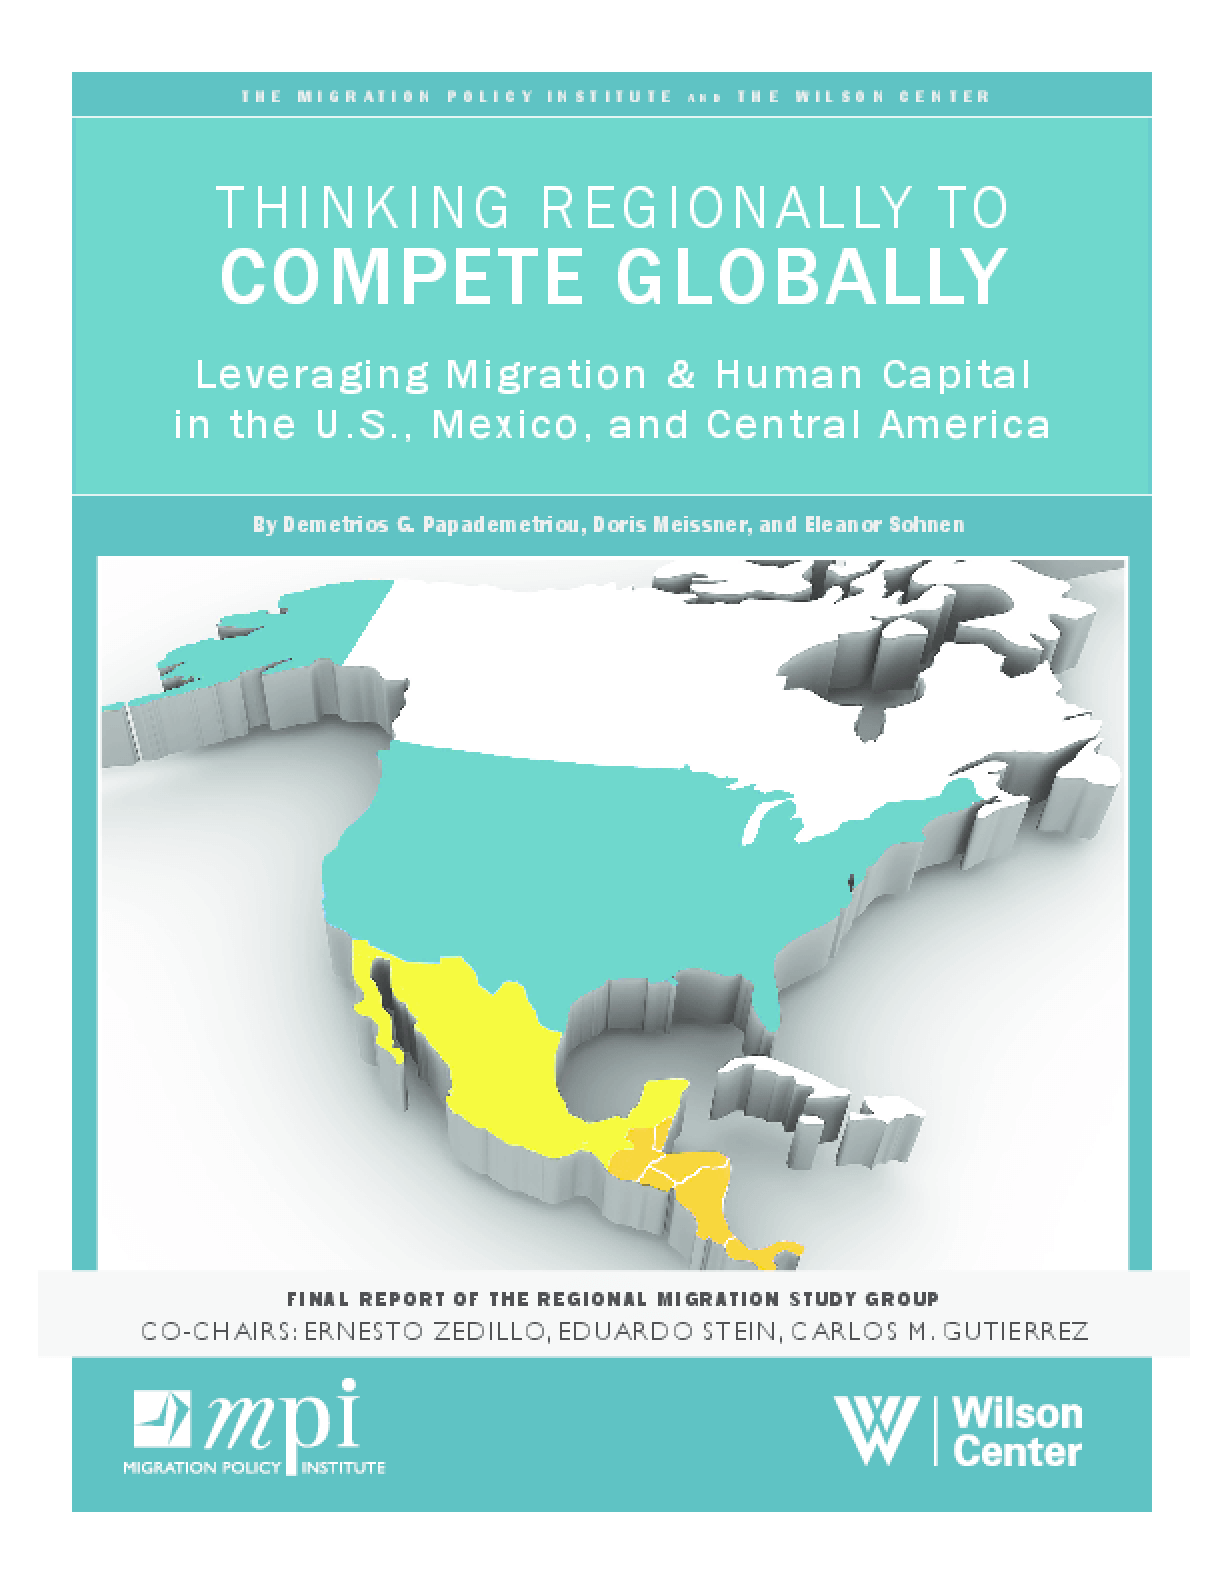 Thinking Regionally to Compete Globally: Leveraging Migration and Human Capital in the U.S., Mexico and Central America